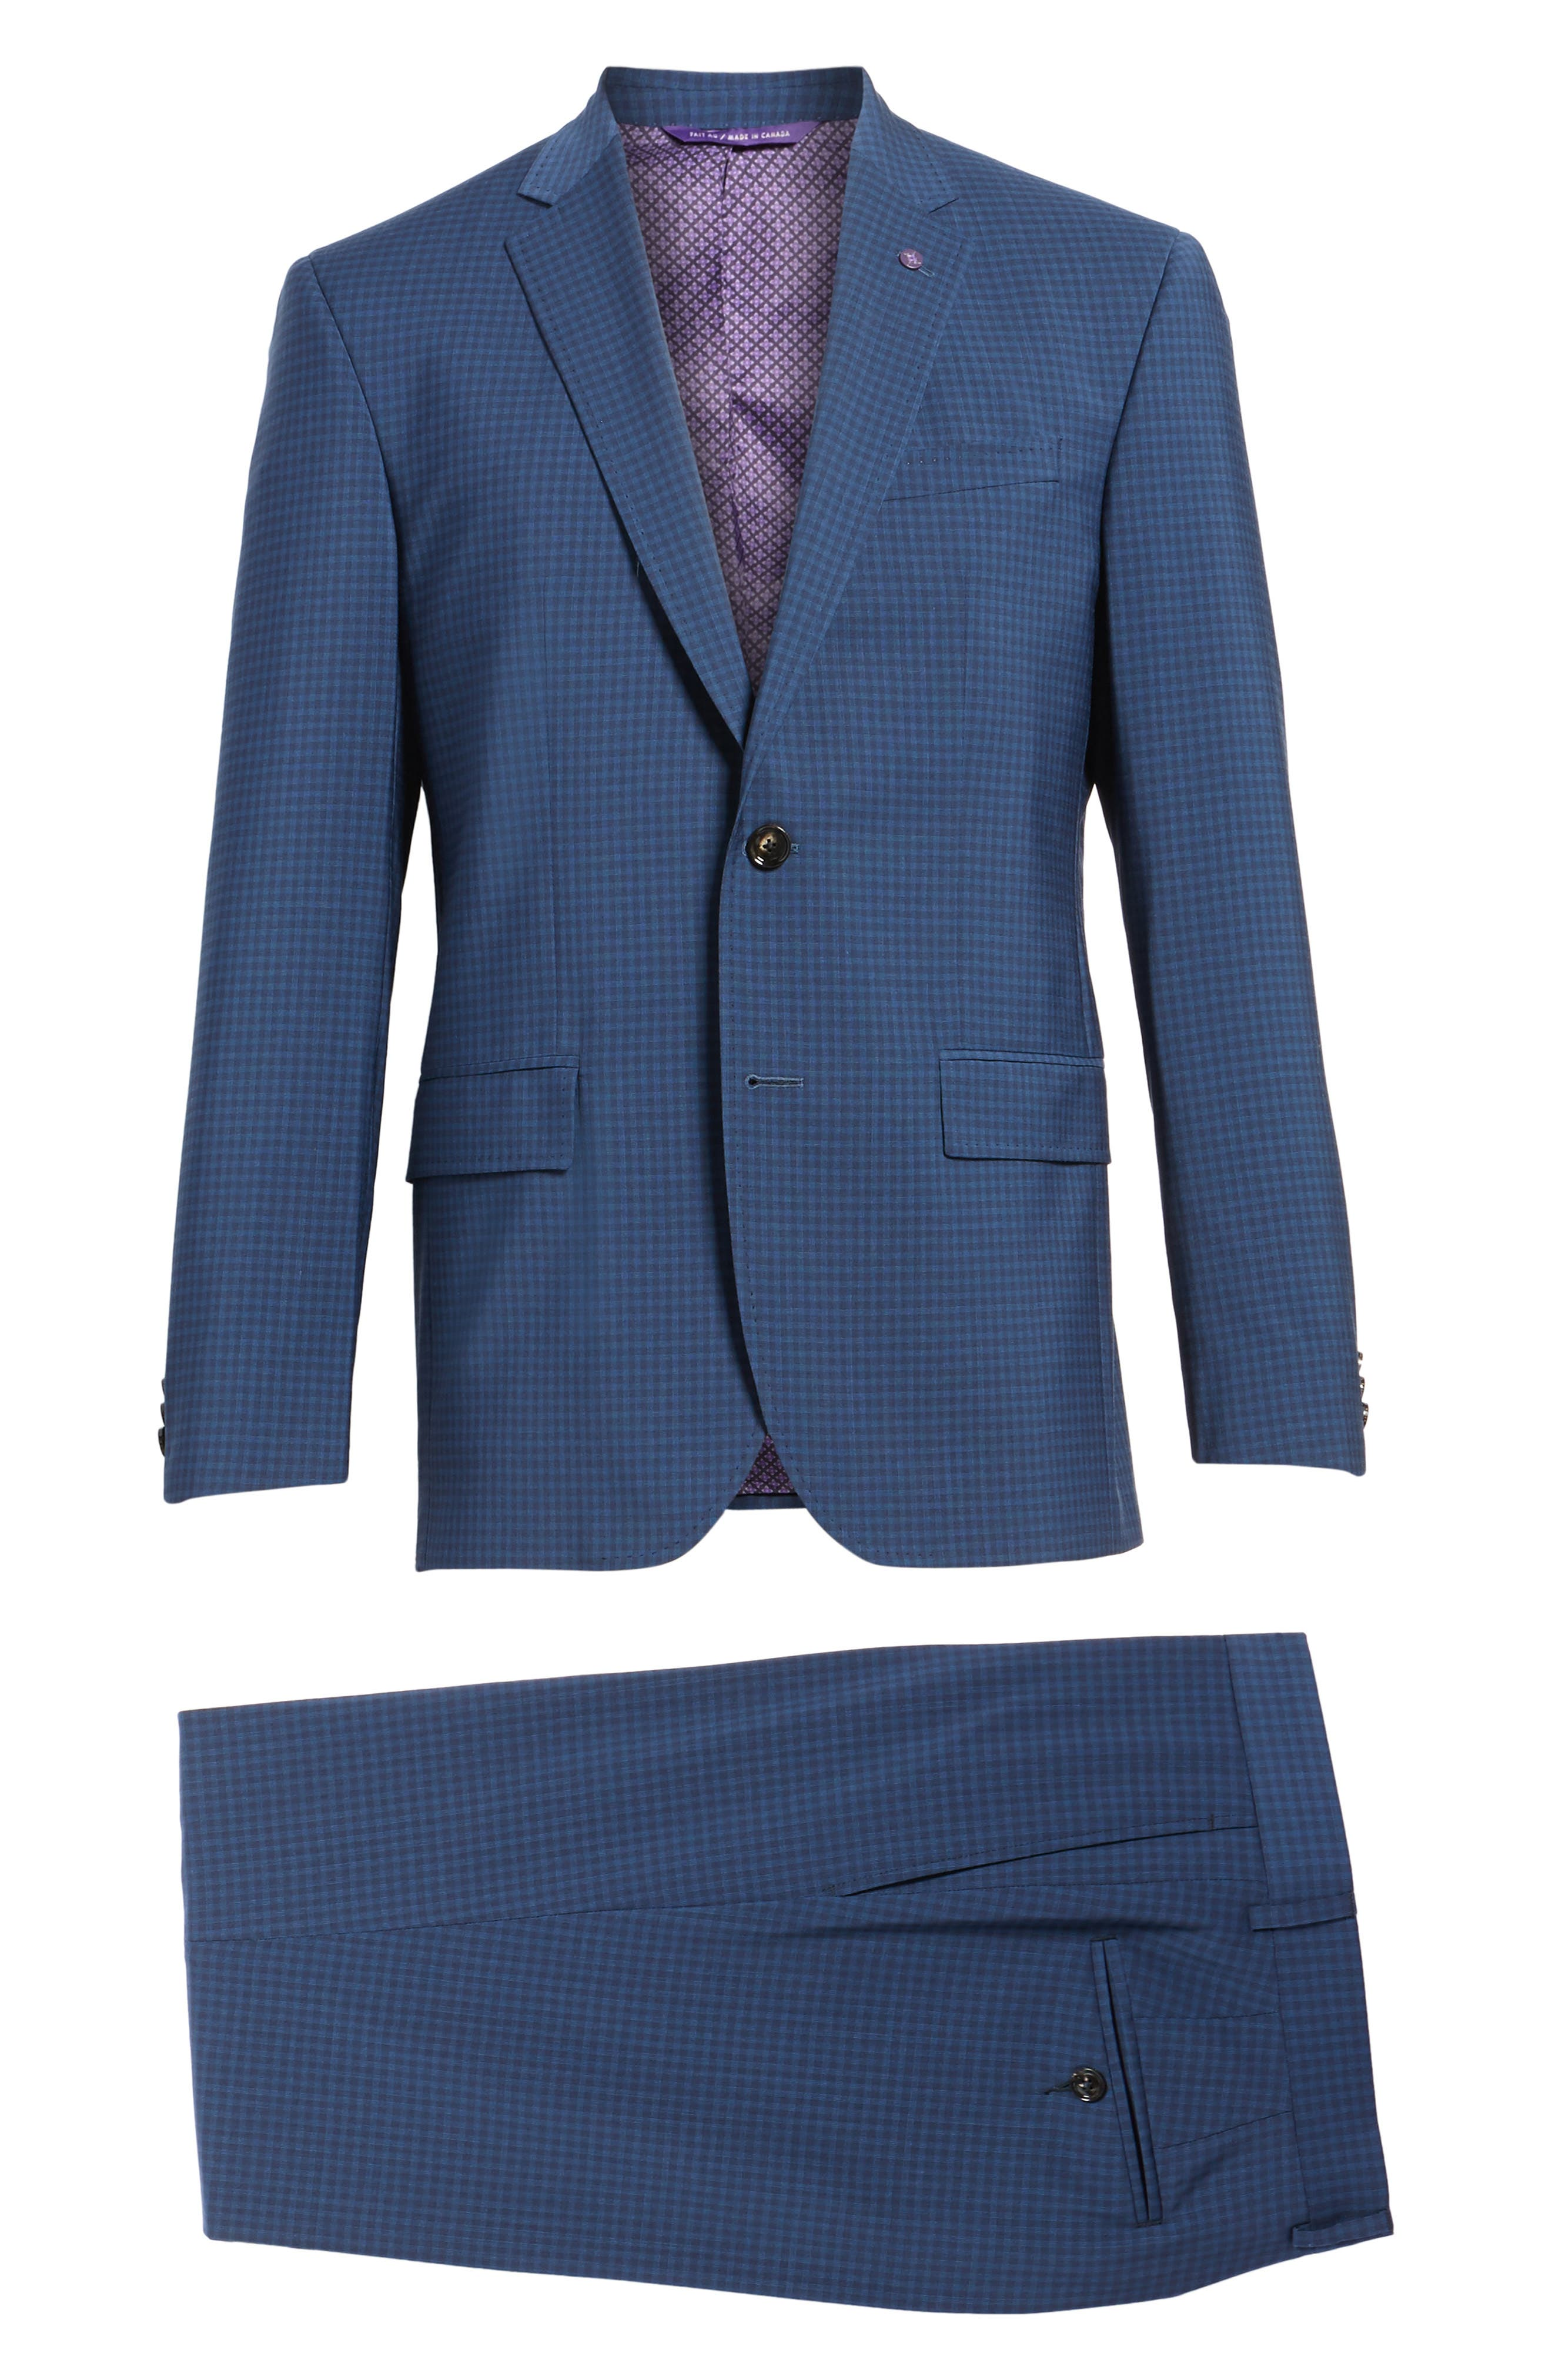 Jay Trim Fit Stretch Wool Suit,                             Alternate thumbnail 8, color,                             Blue